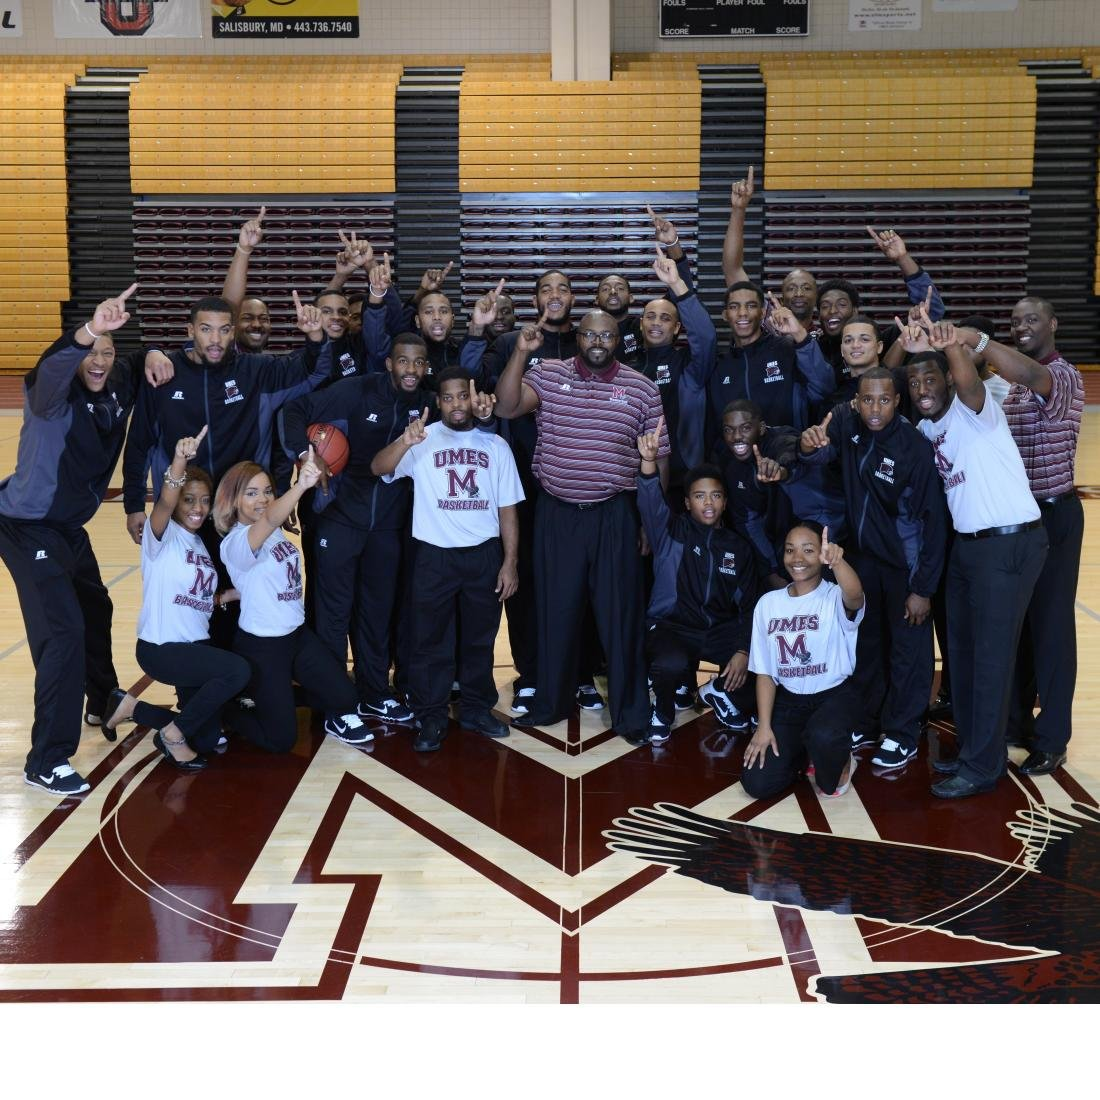 UMES Men's and Women's Hoops begins their 2015-16 Campaign